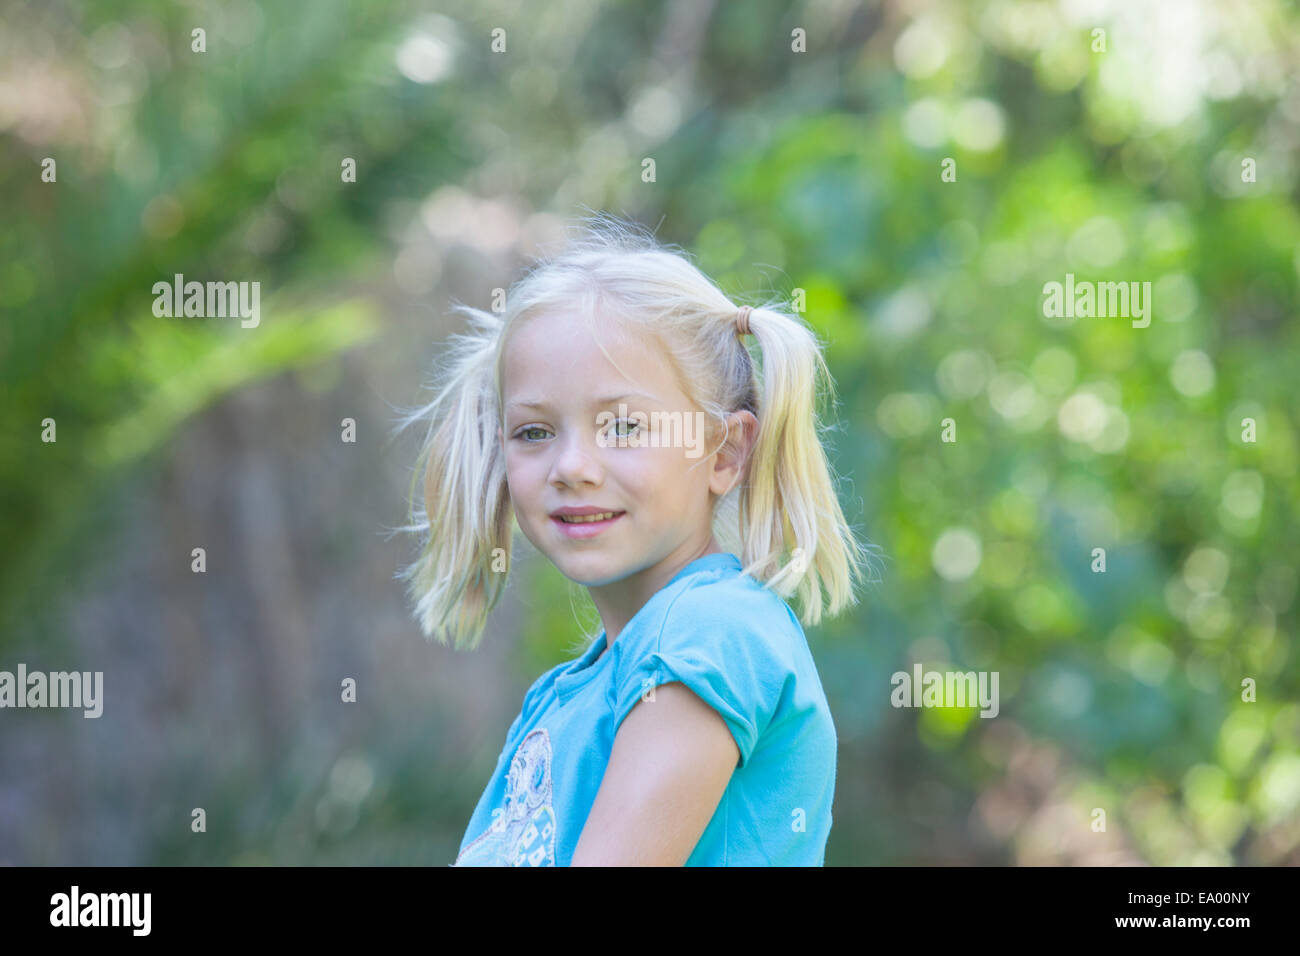 Portrait of girl looking away in garden Photo Stock